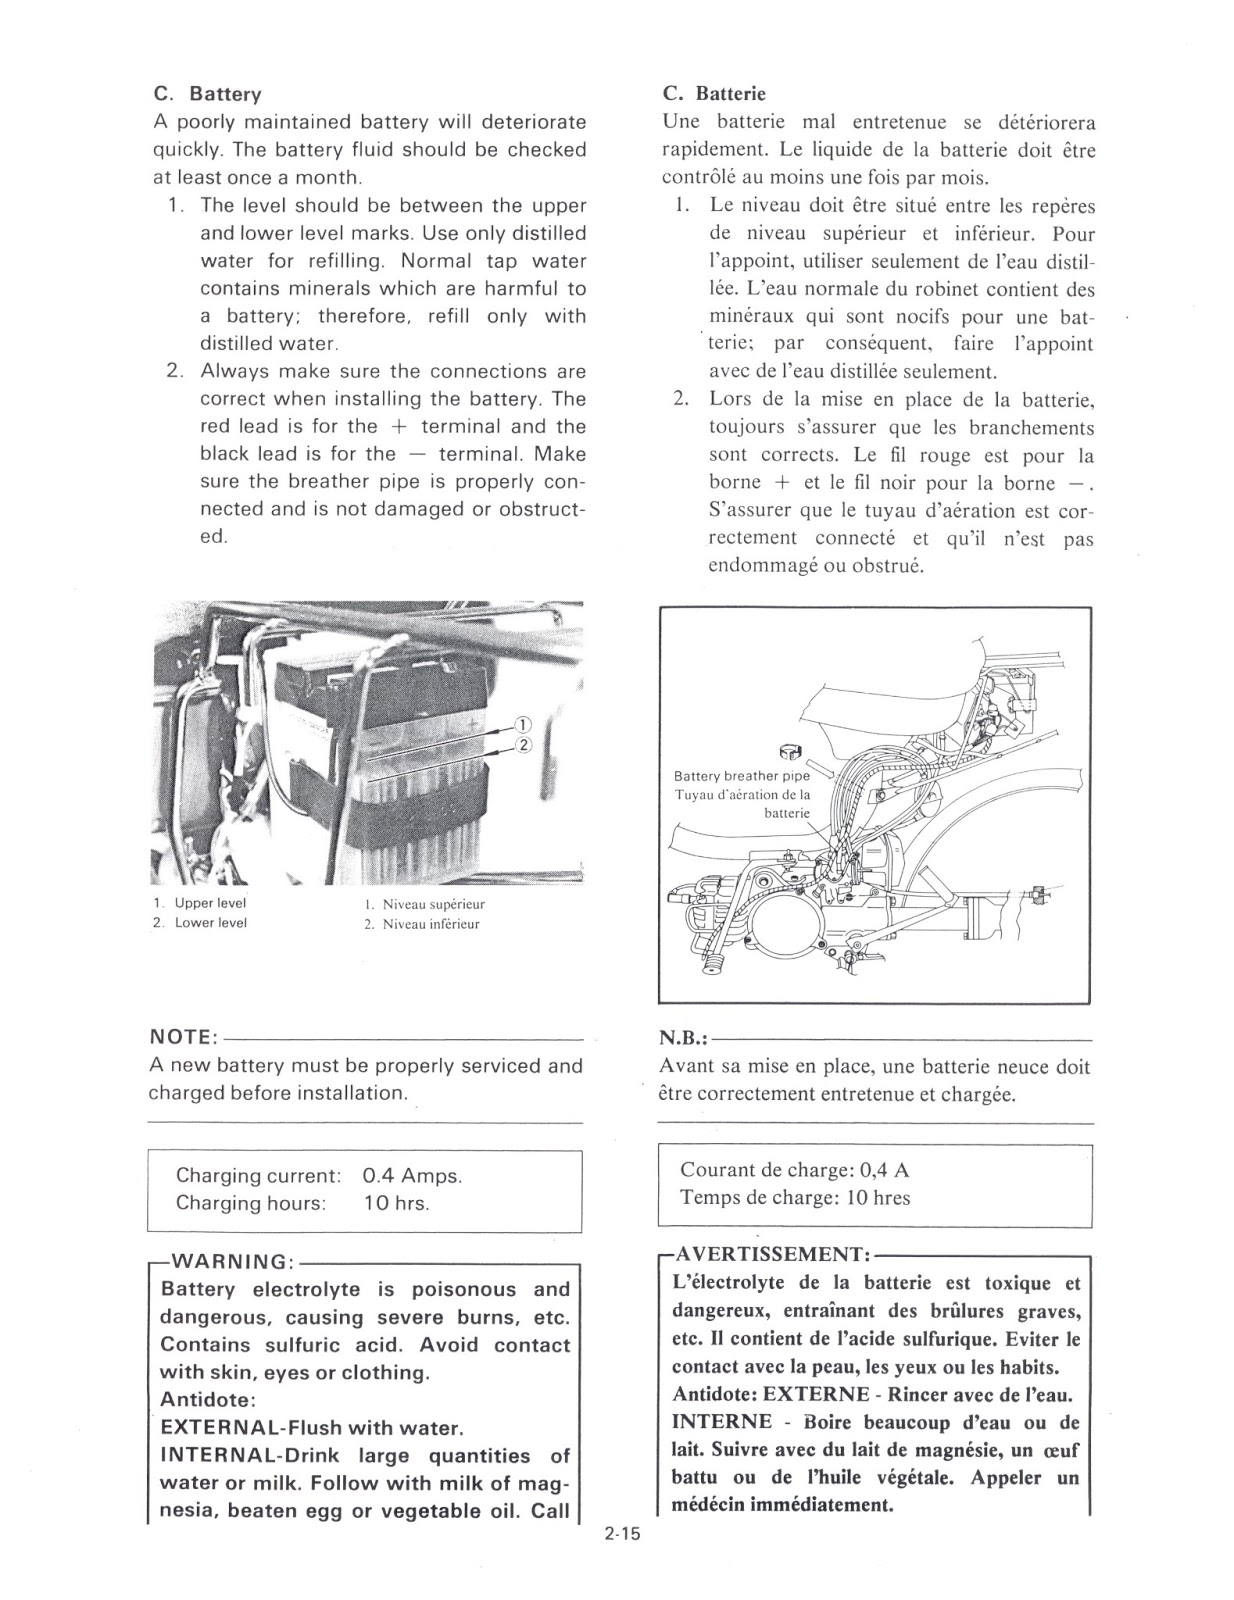 qt50 service manual more information ob1 repairs yamaha qt 50 service manual